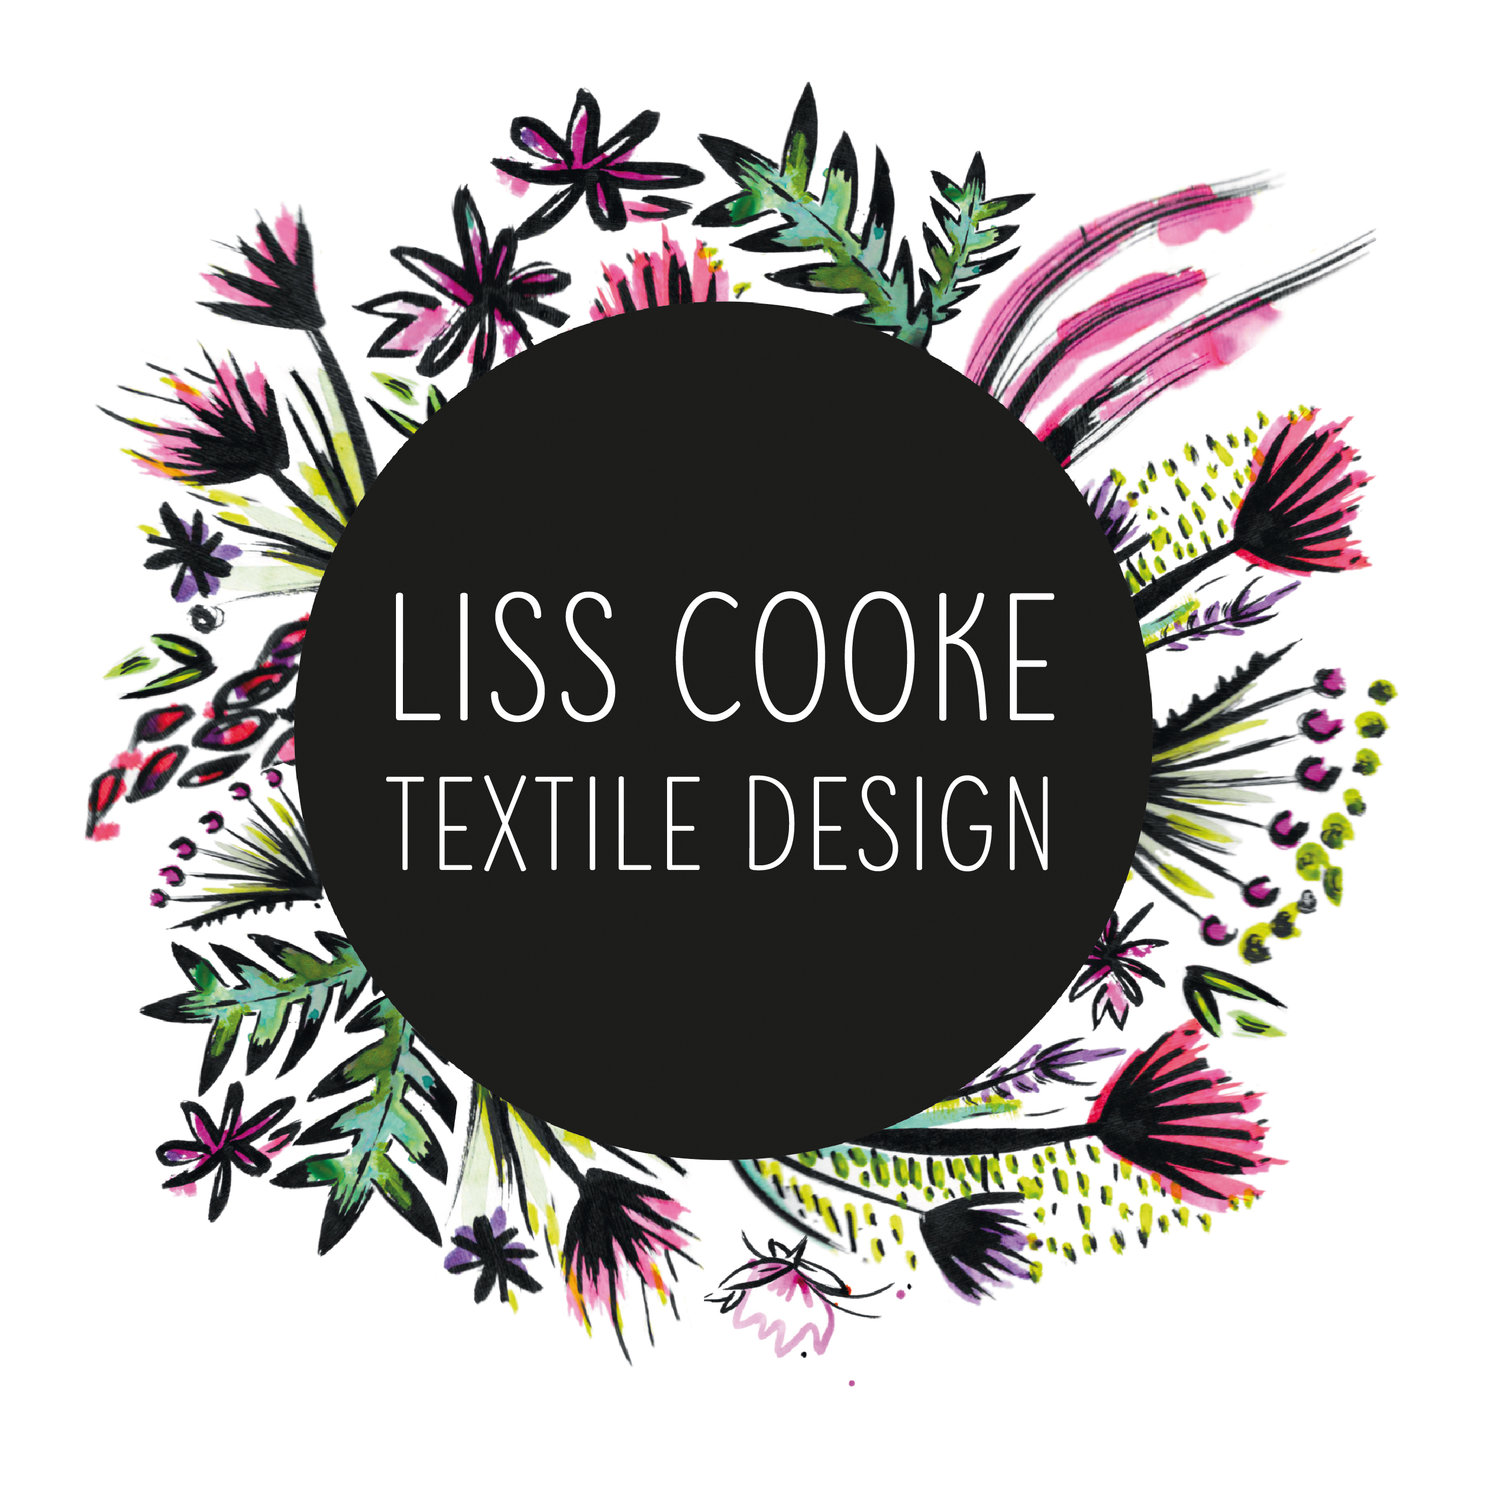 LISS COOKE TEXTILE DESIGN